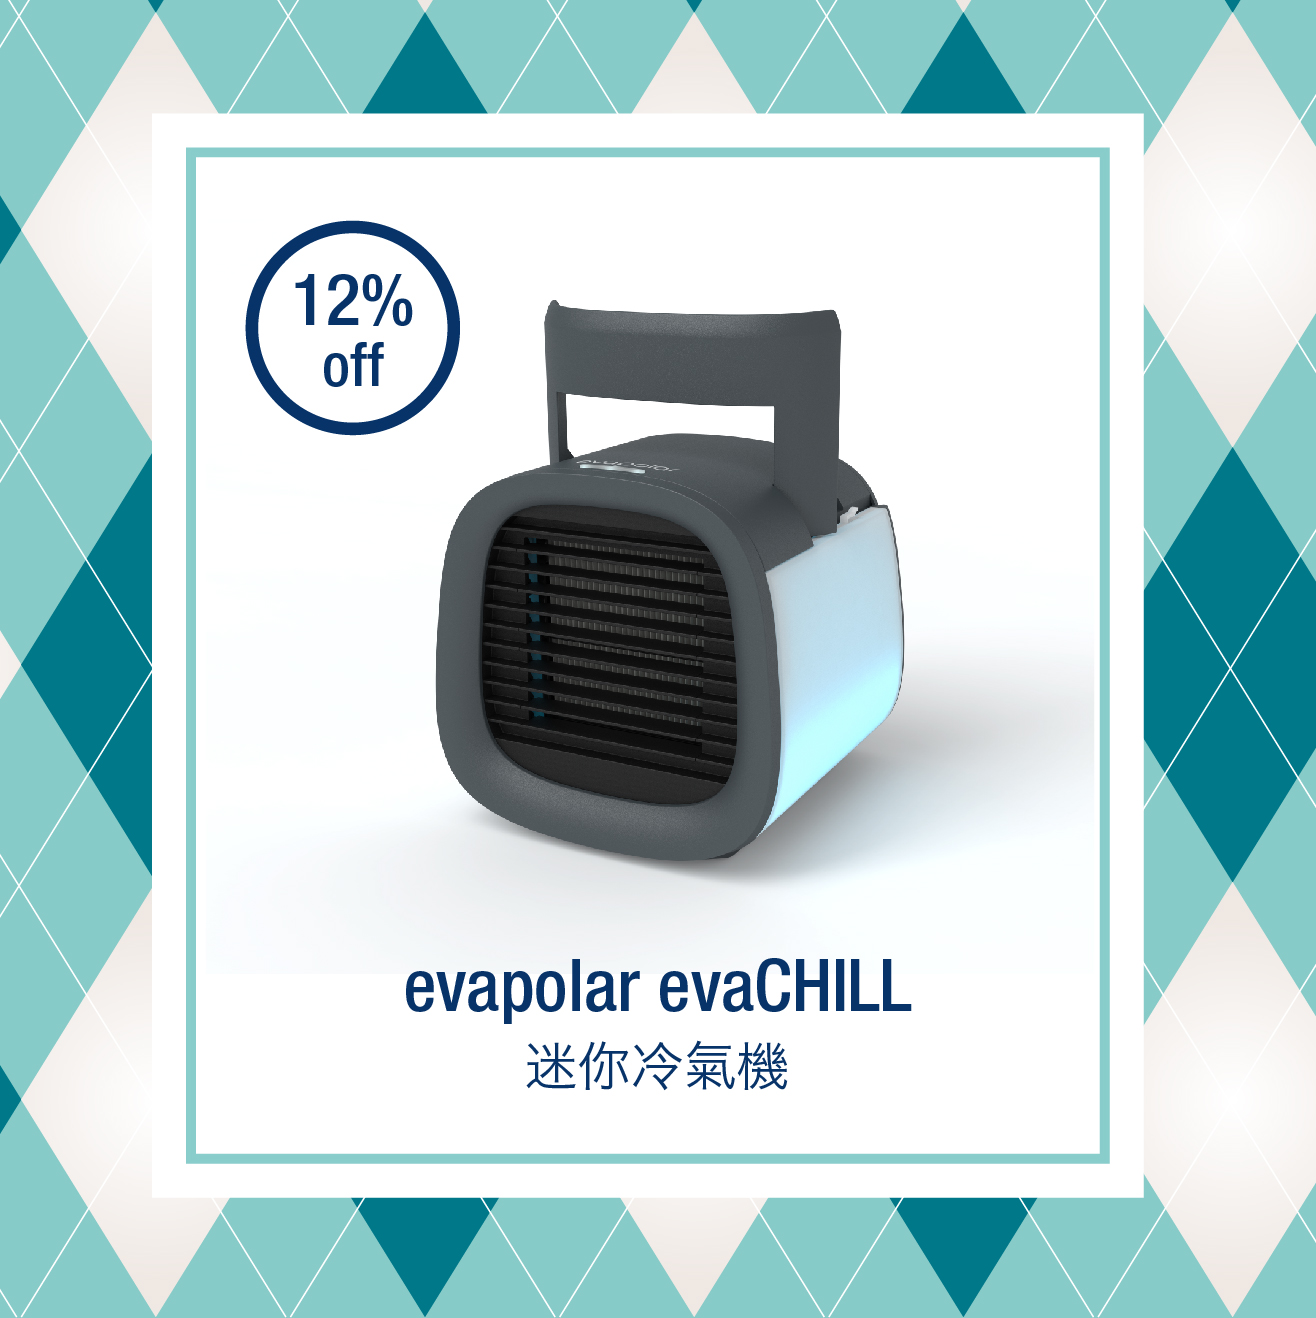 evaCHILL EV-500 personal A/C - #FieryDadWorking with any USB power, evaCHILL EV-500 is a 3-in-1 personal A/C to provide to you the most comfortable climate at all time. It first uses evaporative effect to cool the air around you, then it humidifies the air and purify it by filtering out dust particles.